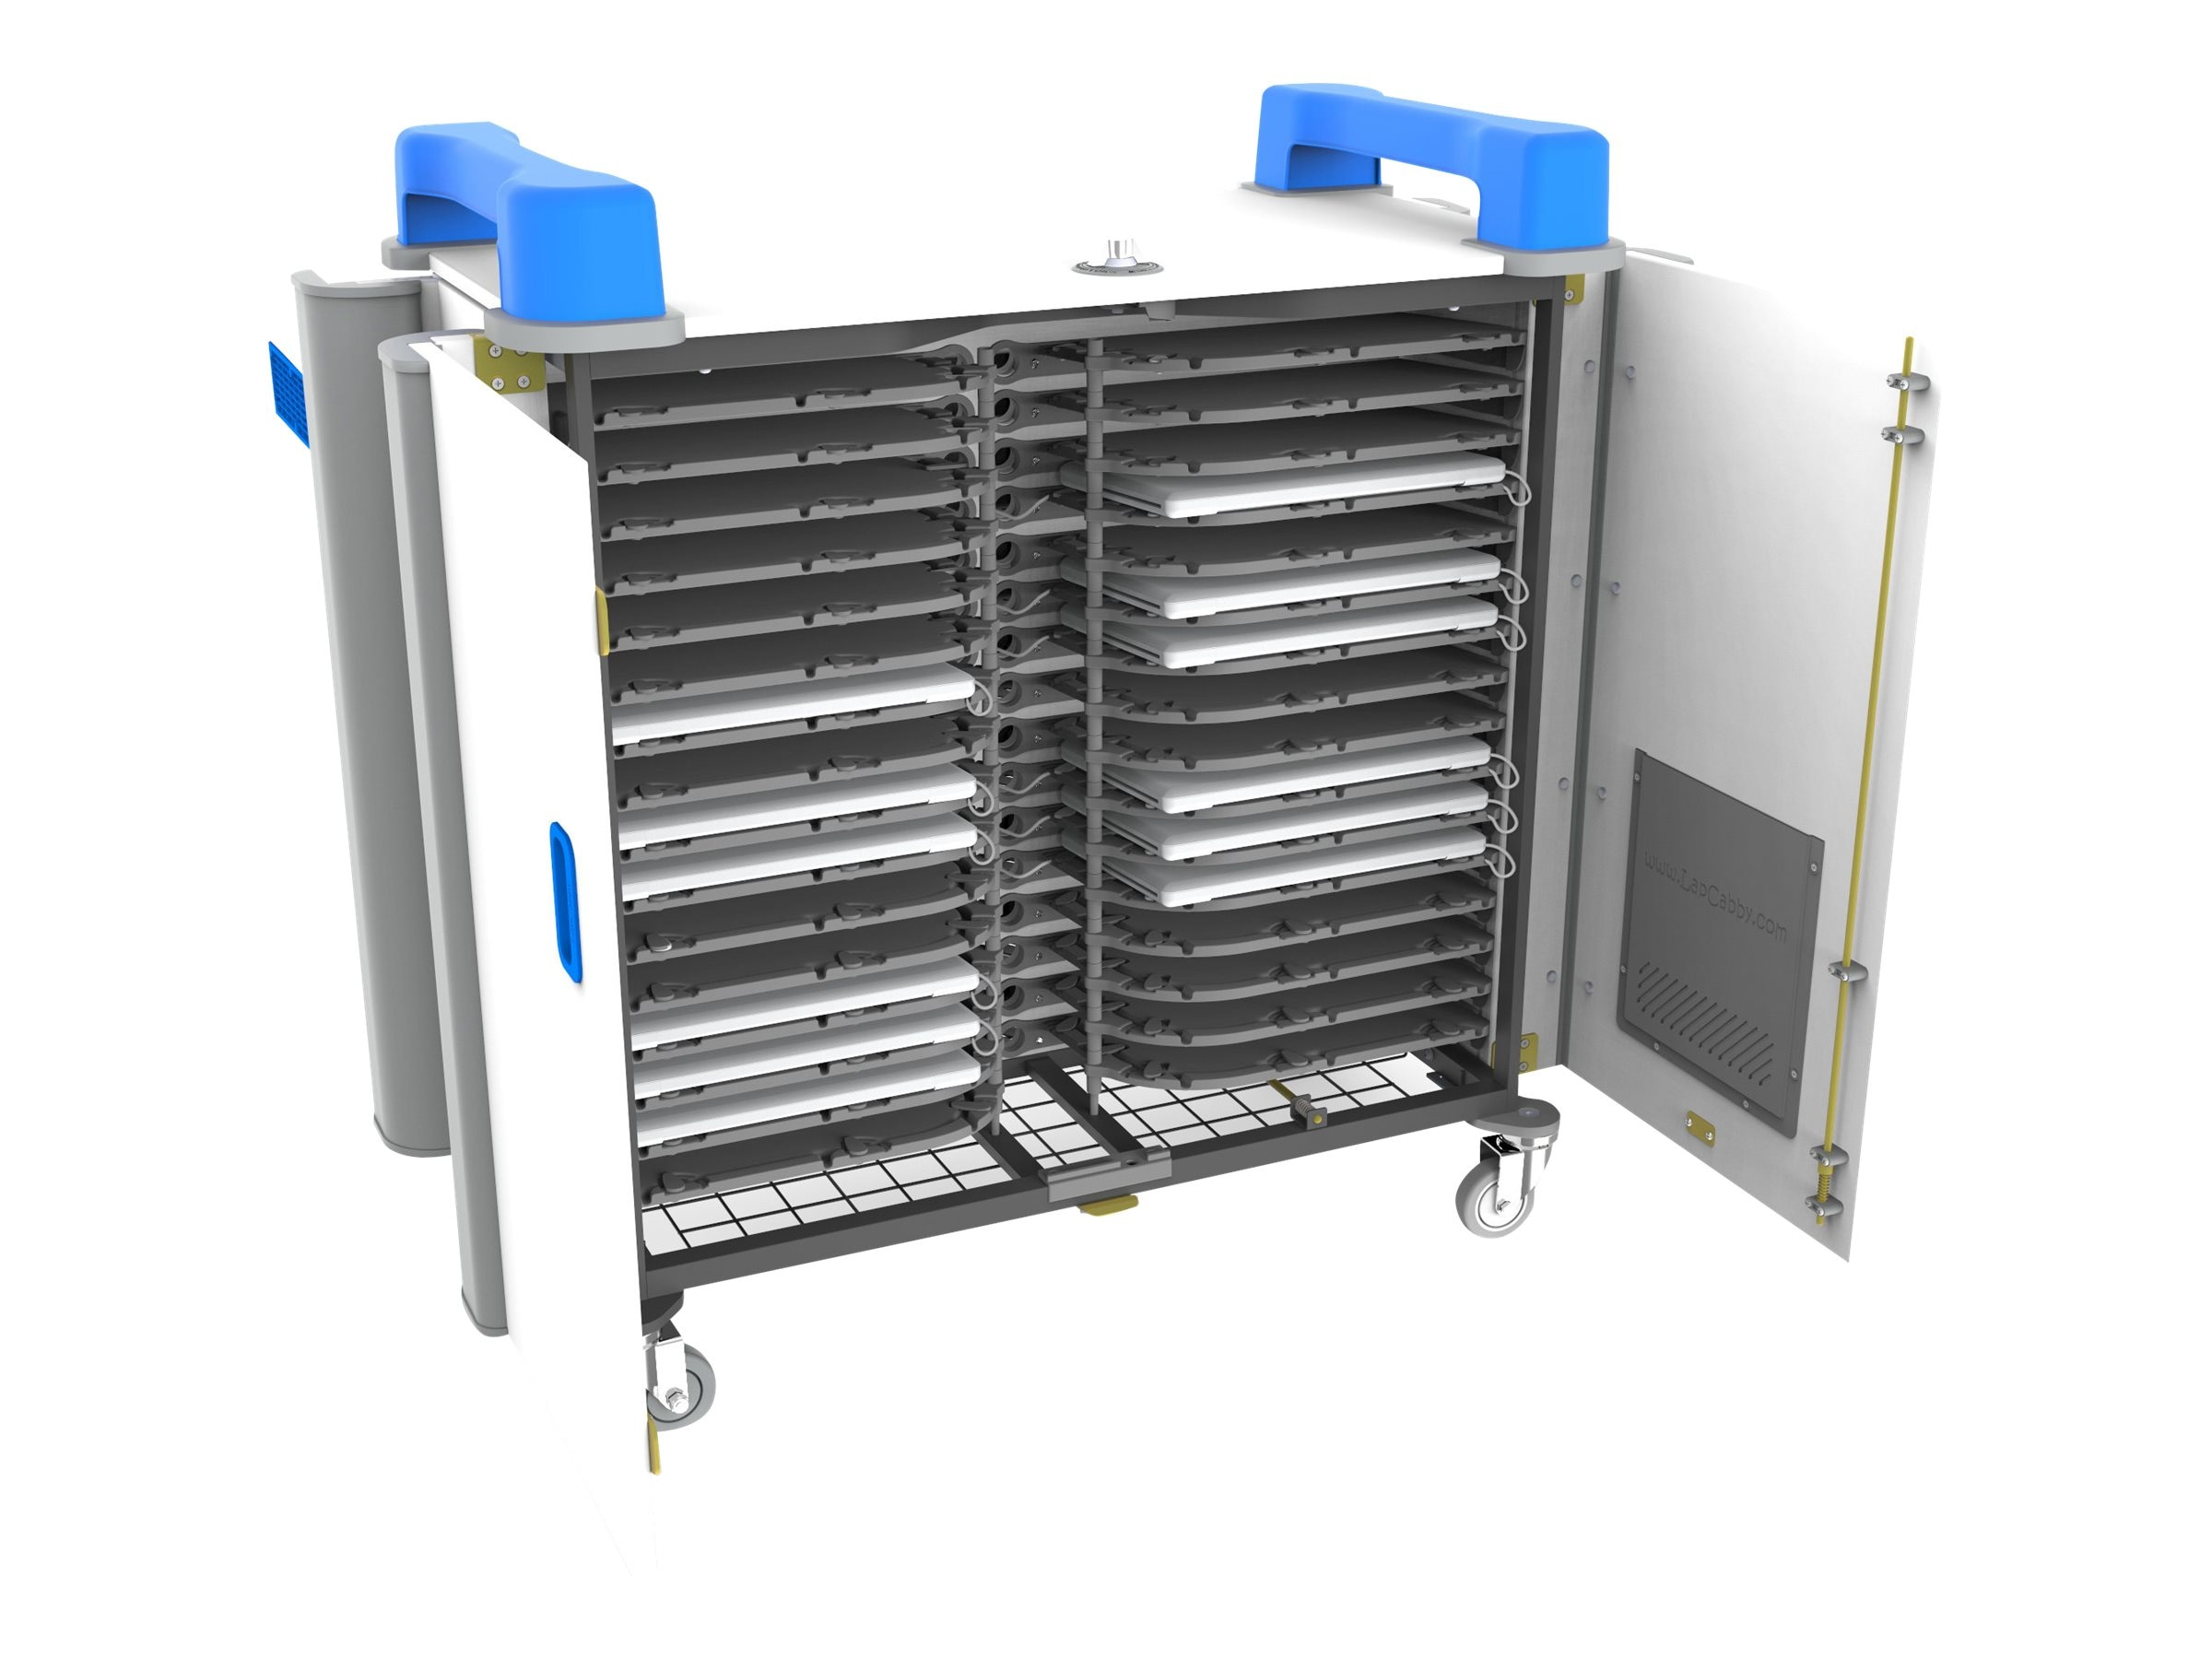 LapCabby 32H 32-Unit Universal Device Cart, Blue, UNICAB32HBL/USA